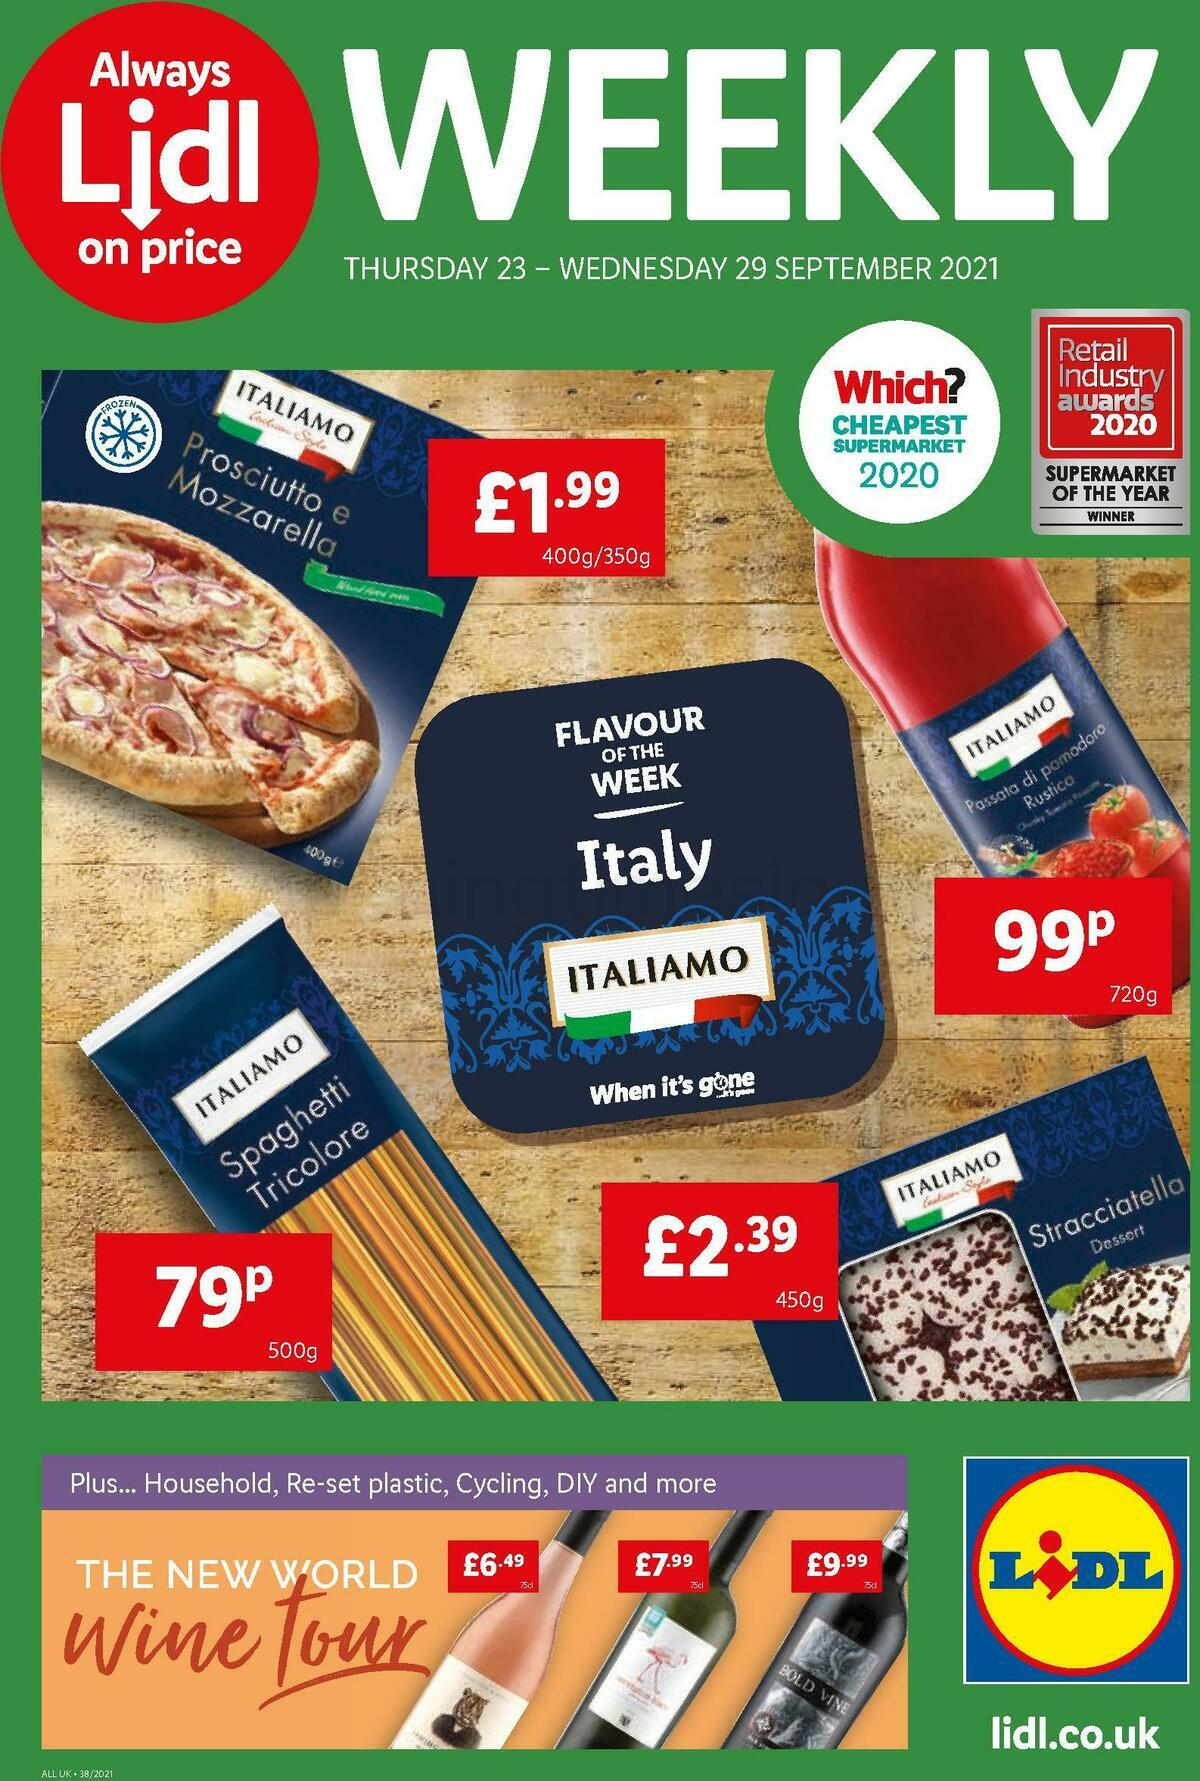 LIDL Offers from September 23